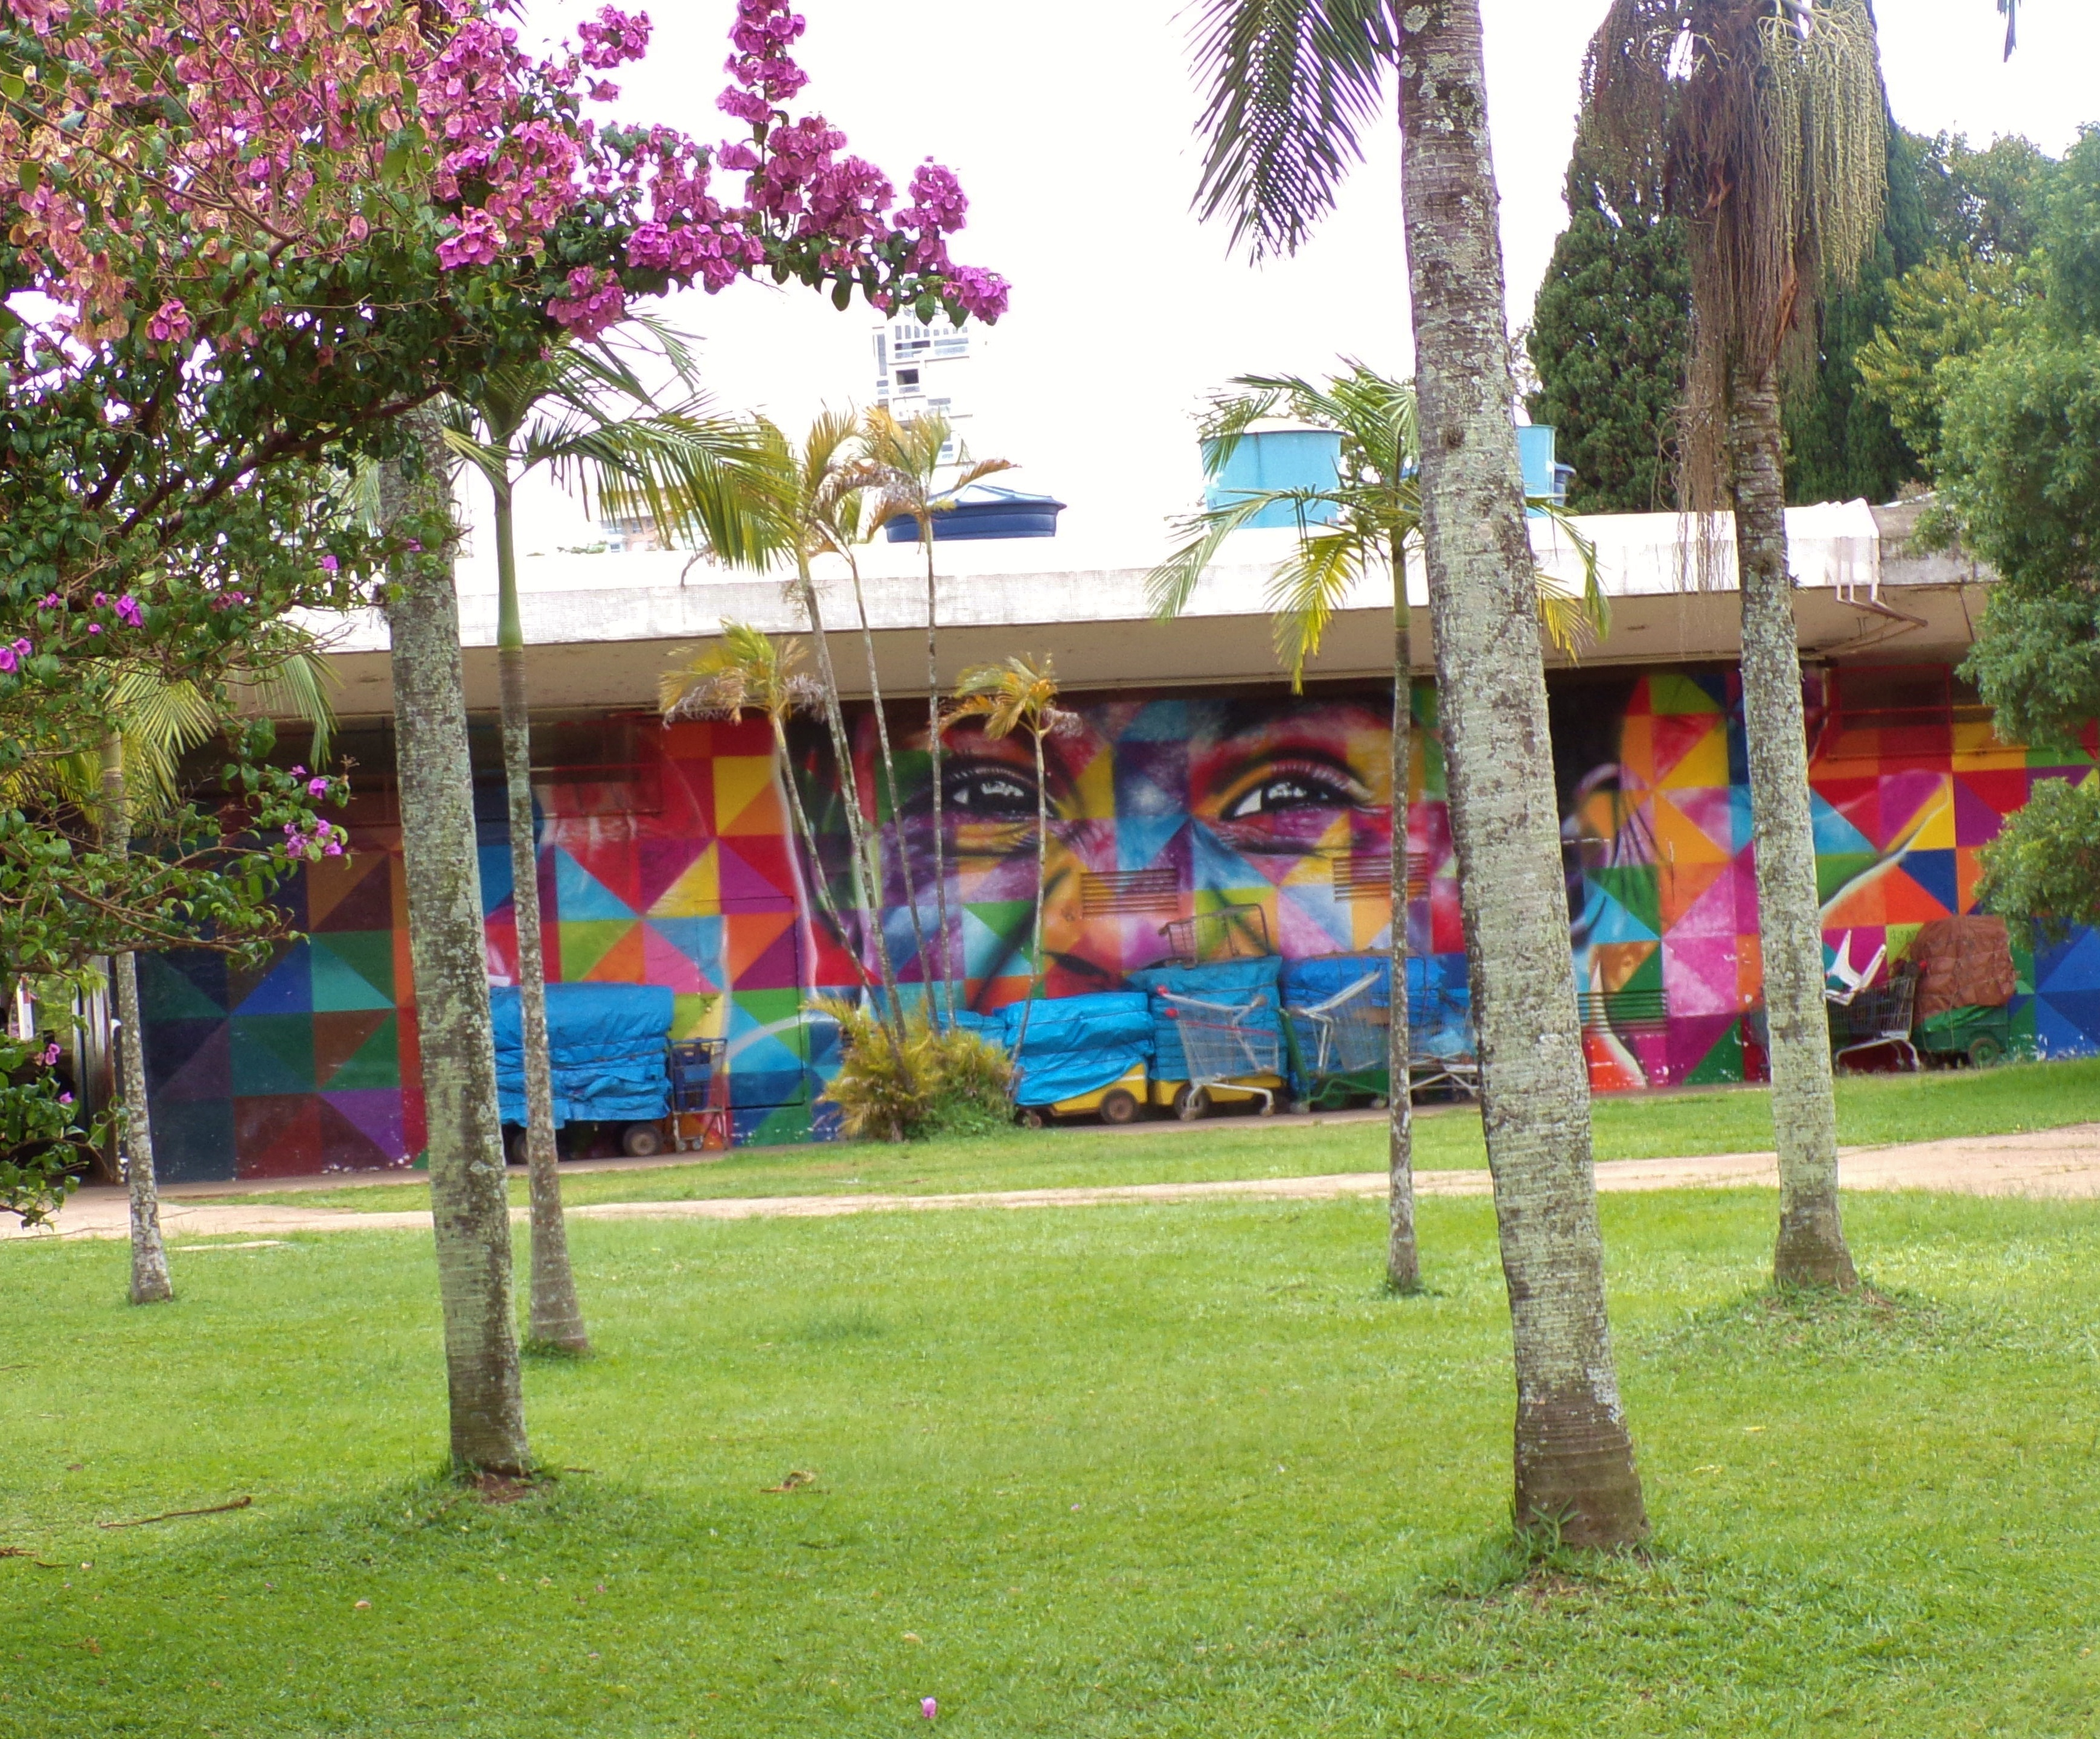 Mural behind palm and flowering trees